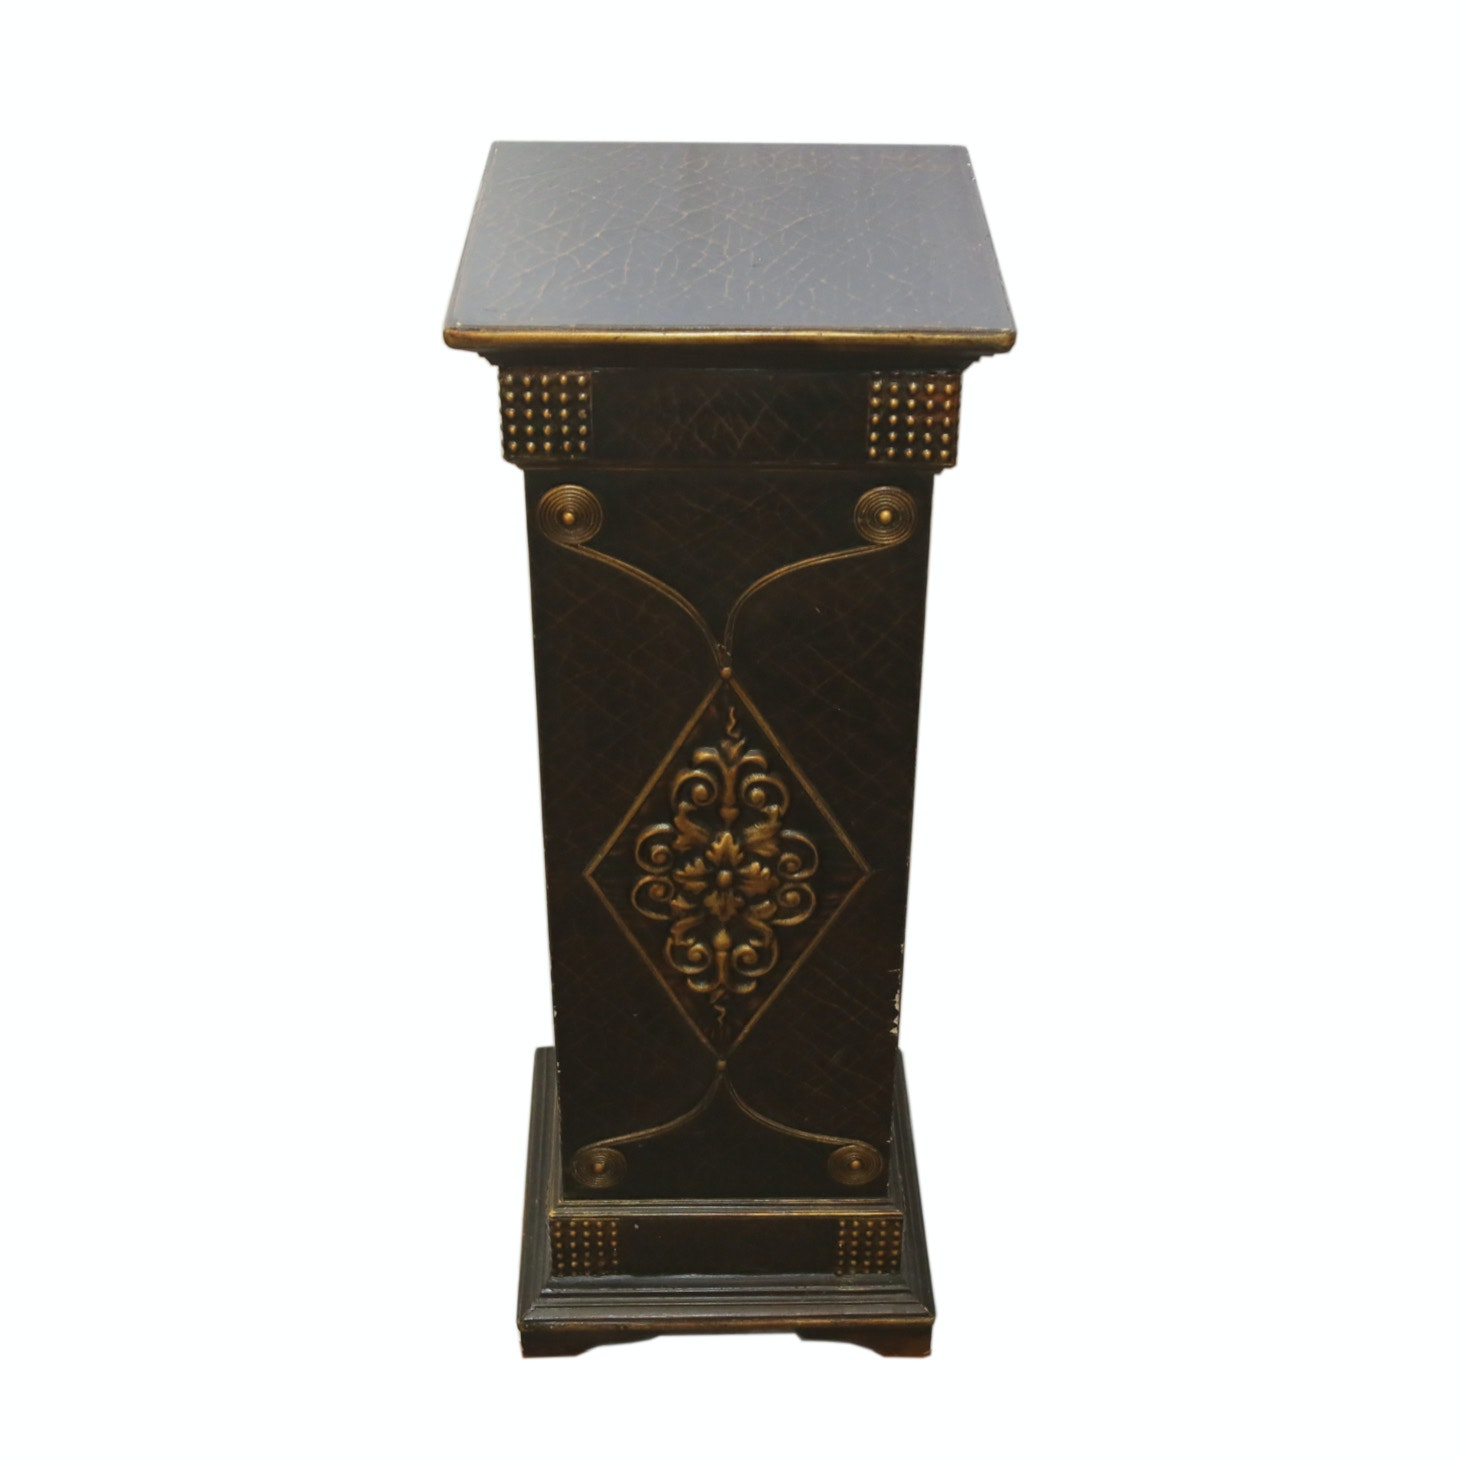 Vintage Neoclassical Style Pedestal